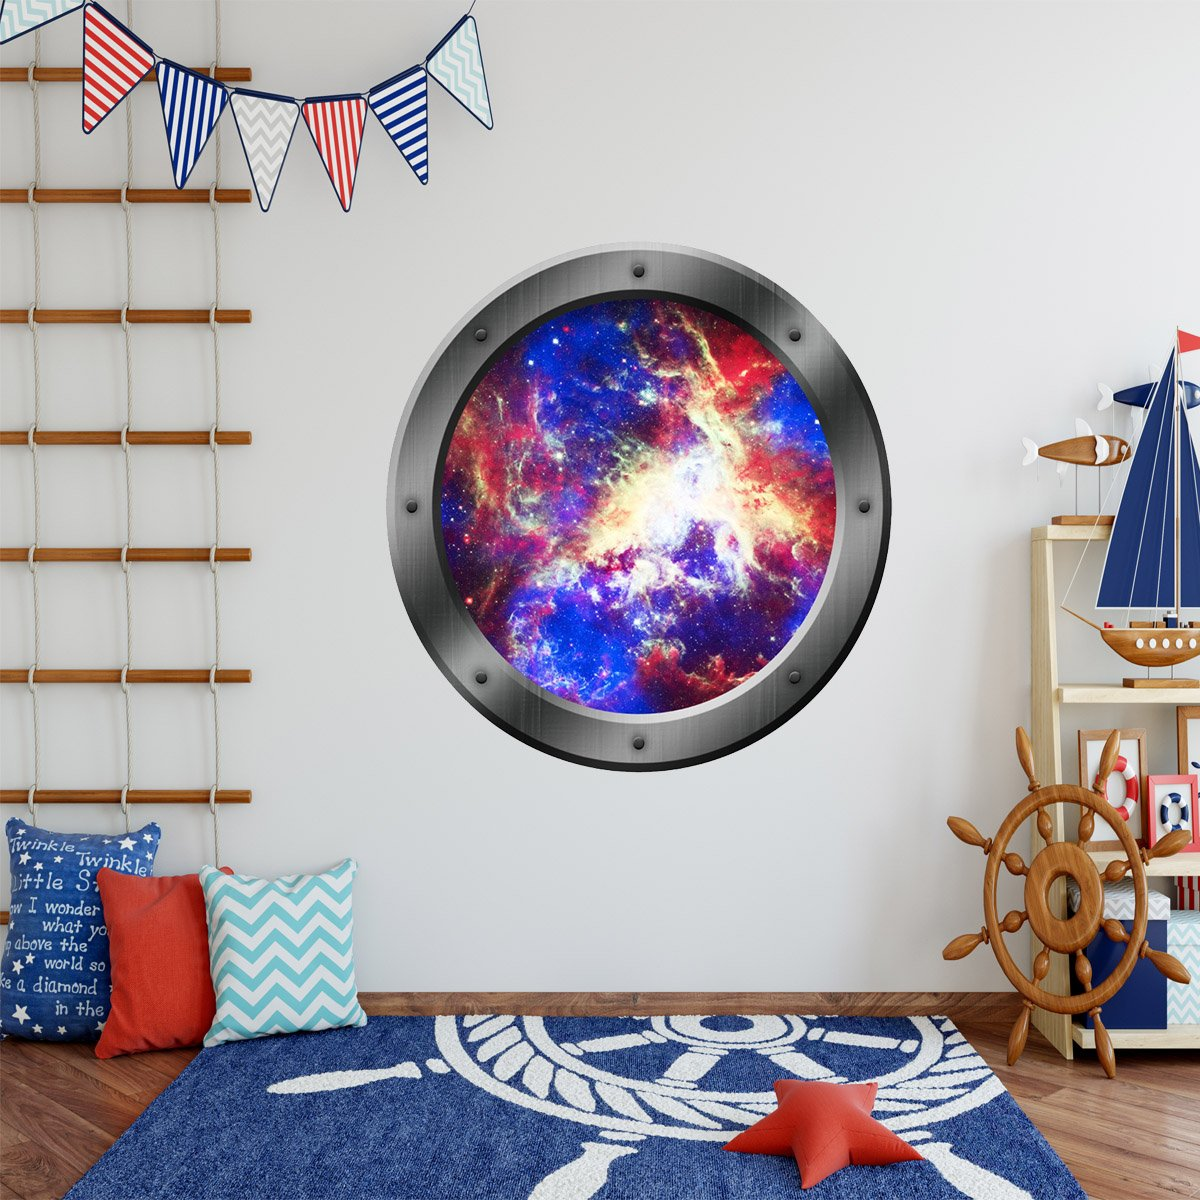 VWAQ Galaxy Spaceship View Porthole Window Peel and Stick Vinyl Decal - PS6 - VWAQ Vinyl Wall Art Quotes and Prints